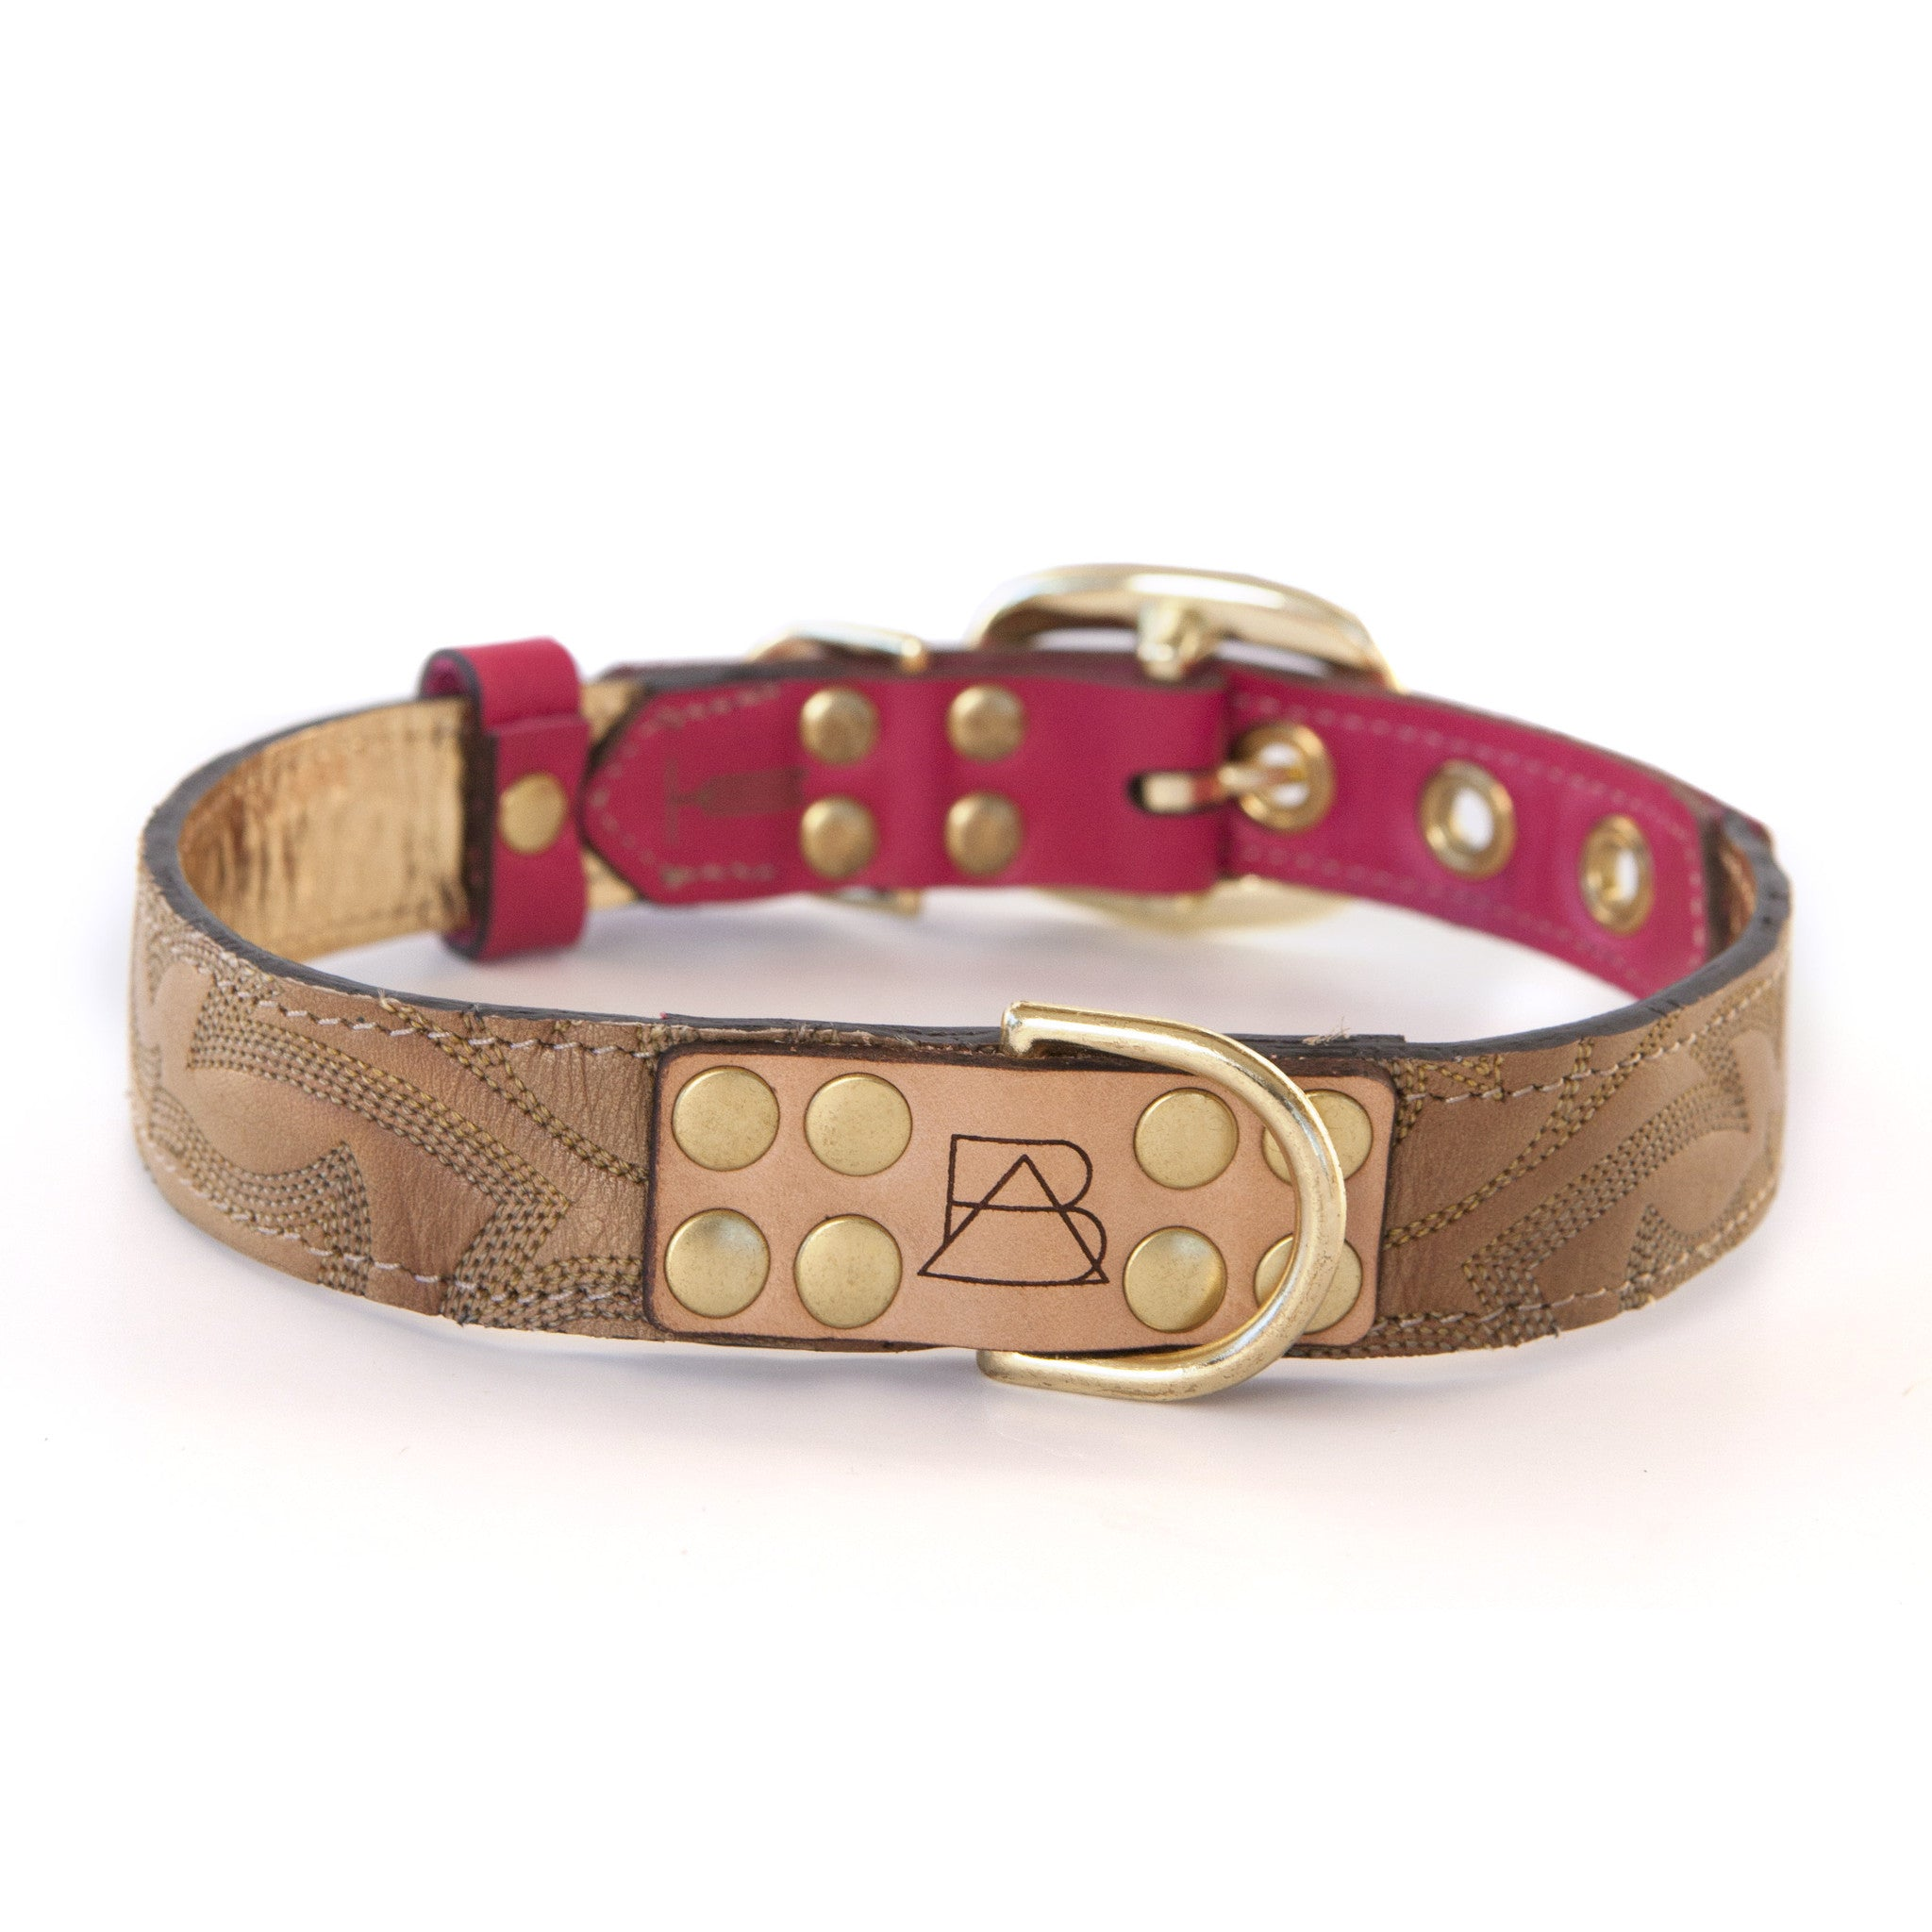 Hot Pink Dog Collar with Light Brown Leather + Tan Stitching (front view)